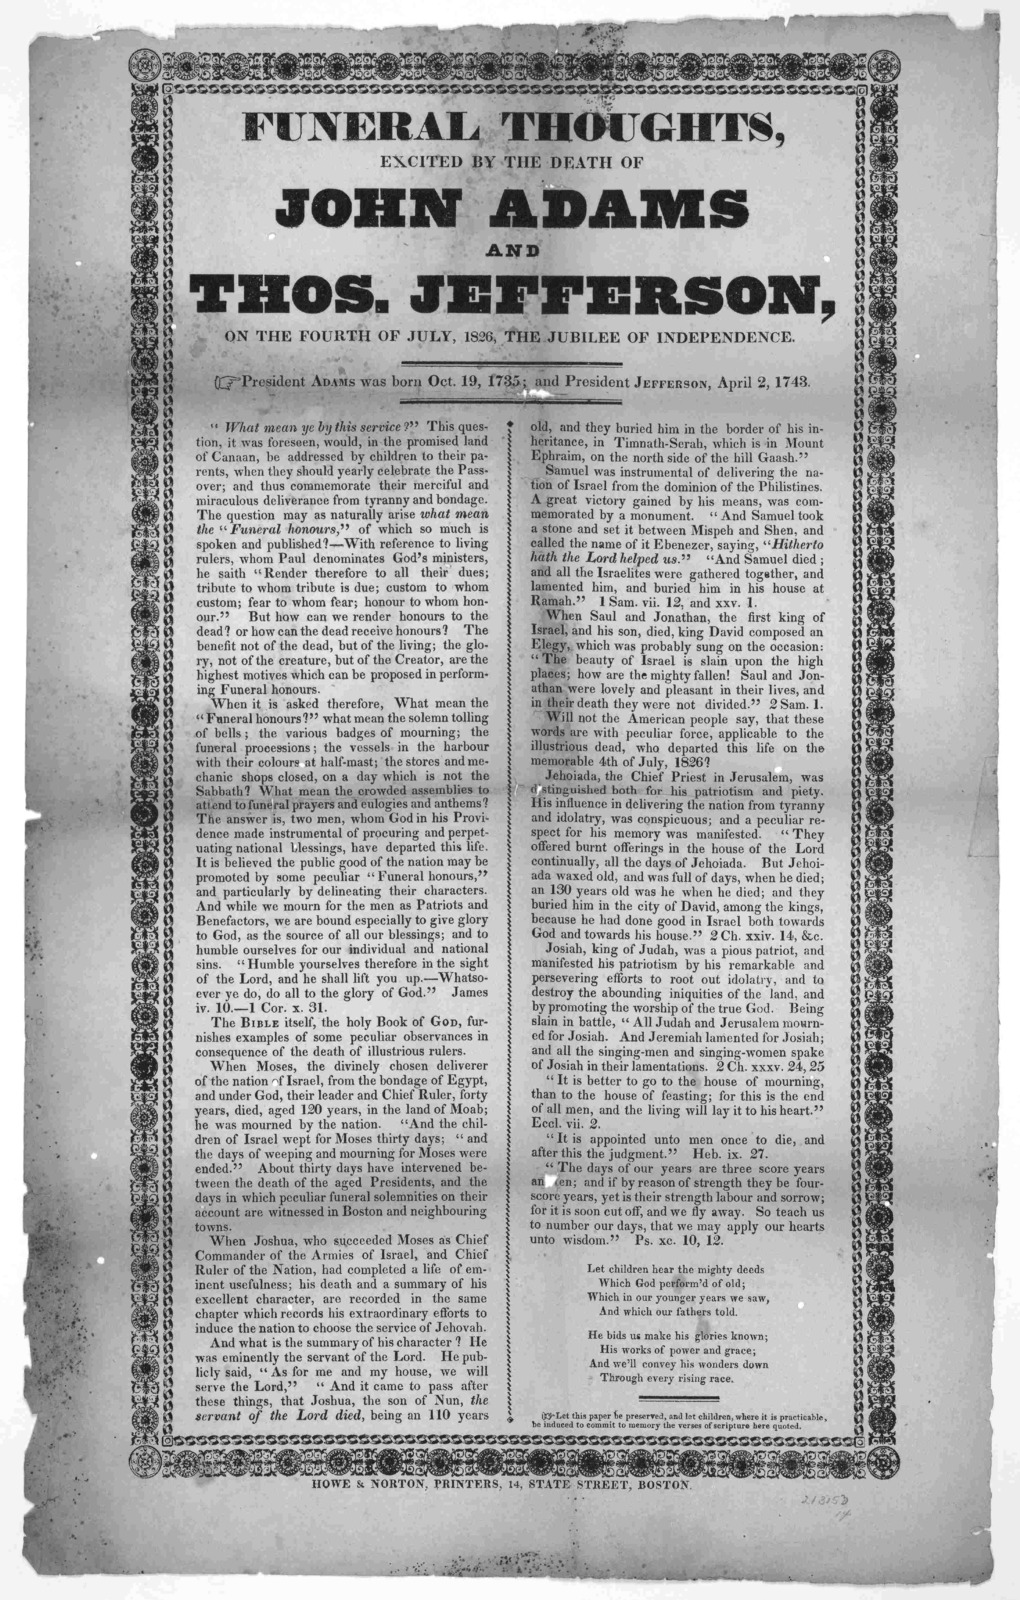 Funeral thoughts, excited by the death of John Adams and Thos. Jefferson, on the fourth of July, 1826, the jubilee of independence ... Boston. Howe & Norton, printers, 14 State Street [1826].